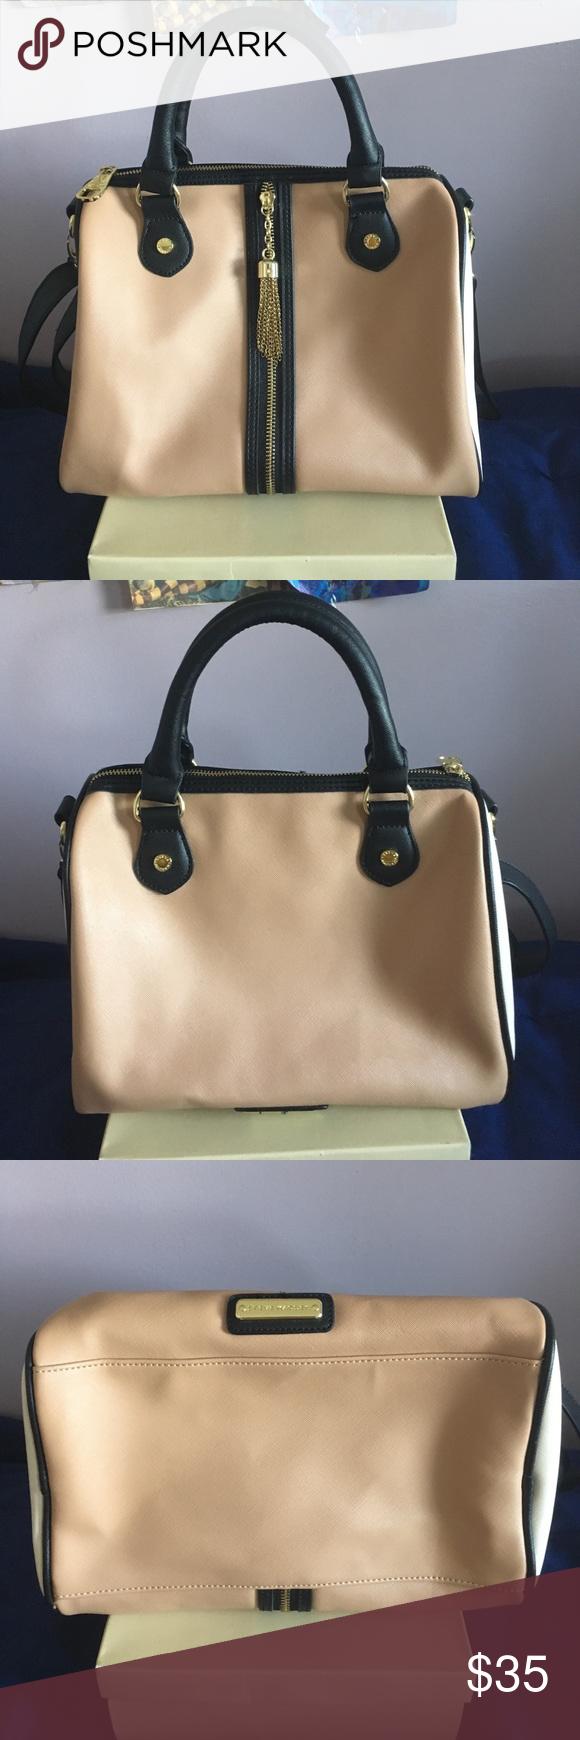 Steve Madden Satchel Used a couple of times but still in good condition! No stains, rips or discoloration. Has two small pockets and one large pocket inside. Has one 20in adjustable strap. Body of the bag is 11X11. Steve Madden Bags Satchels